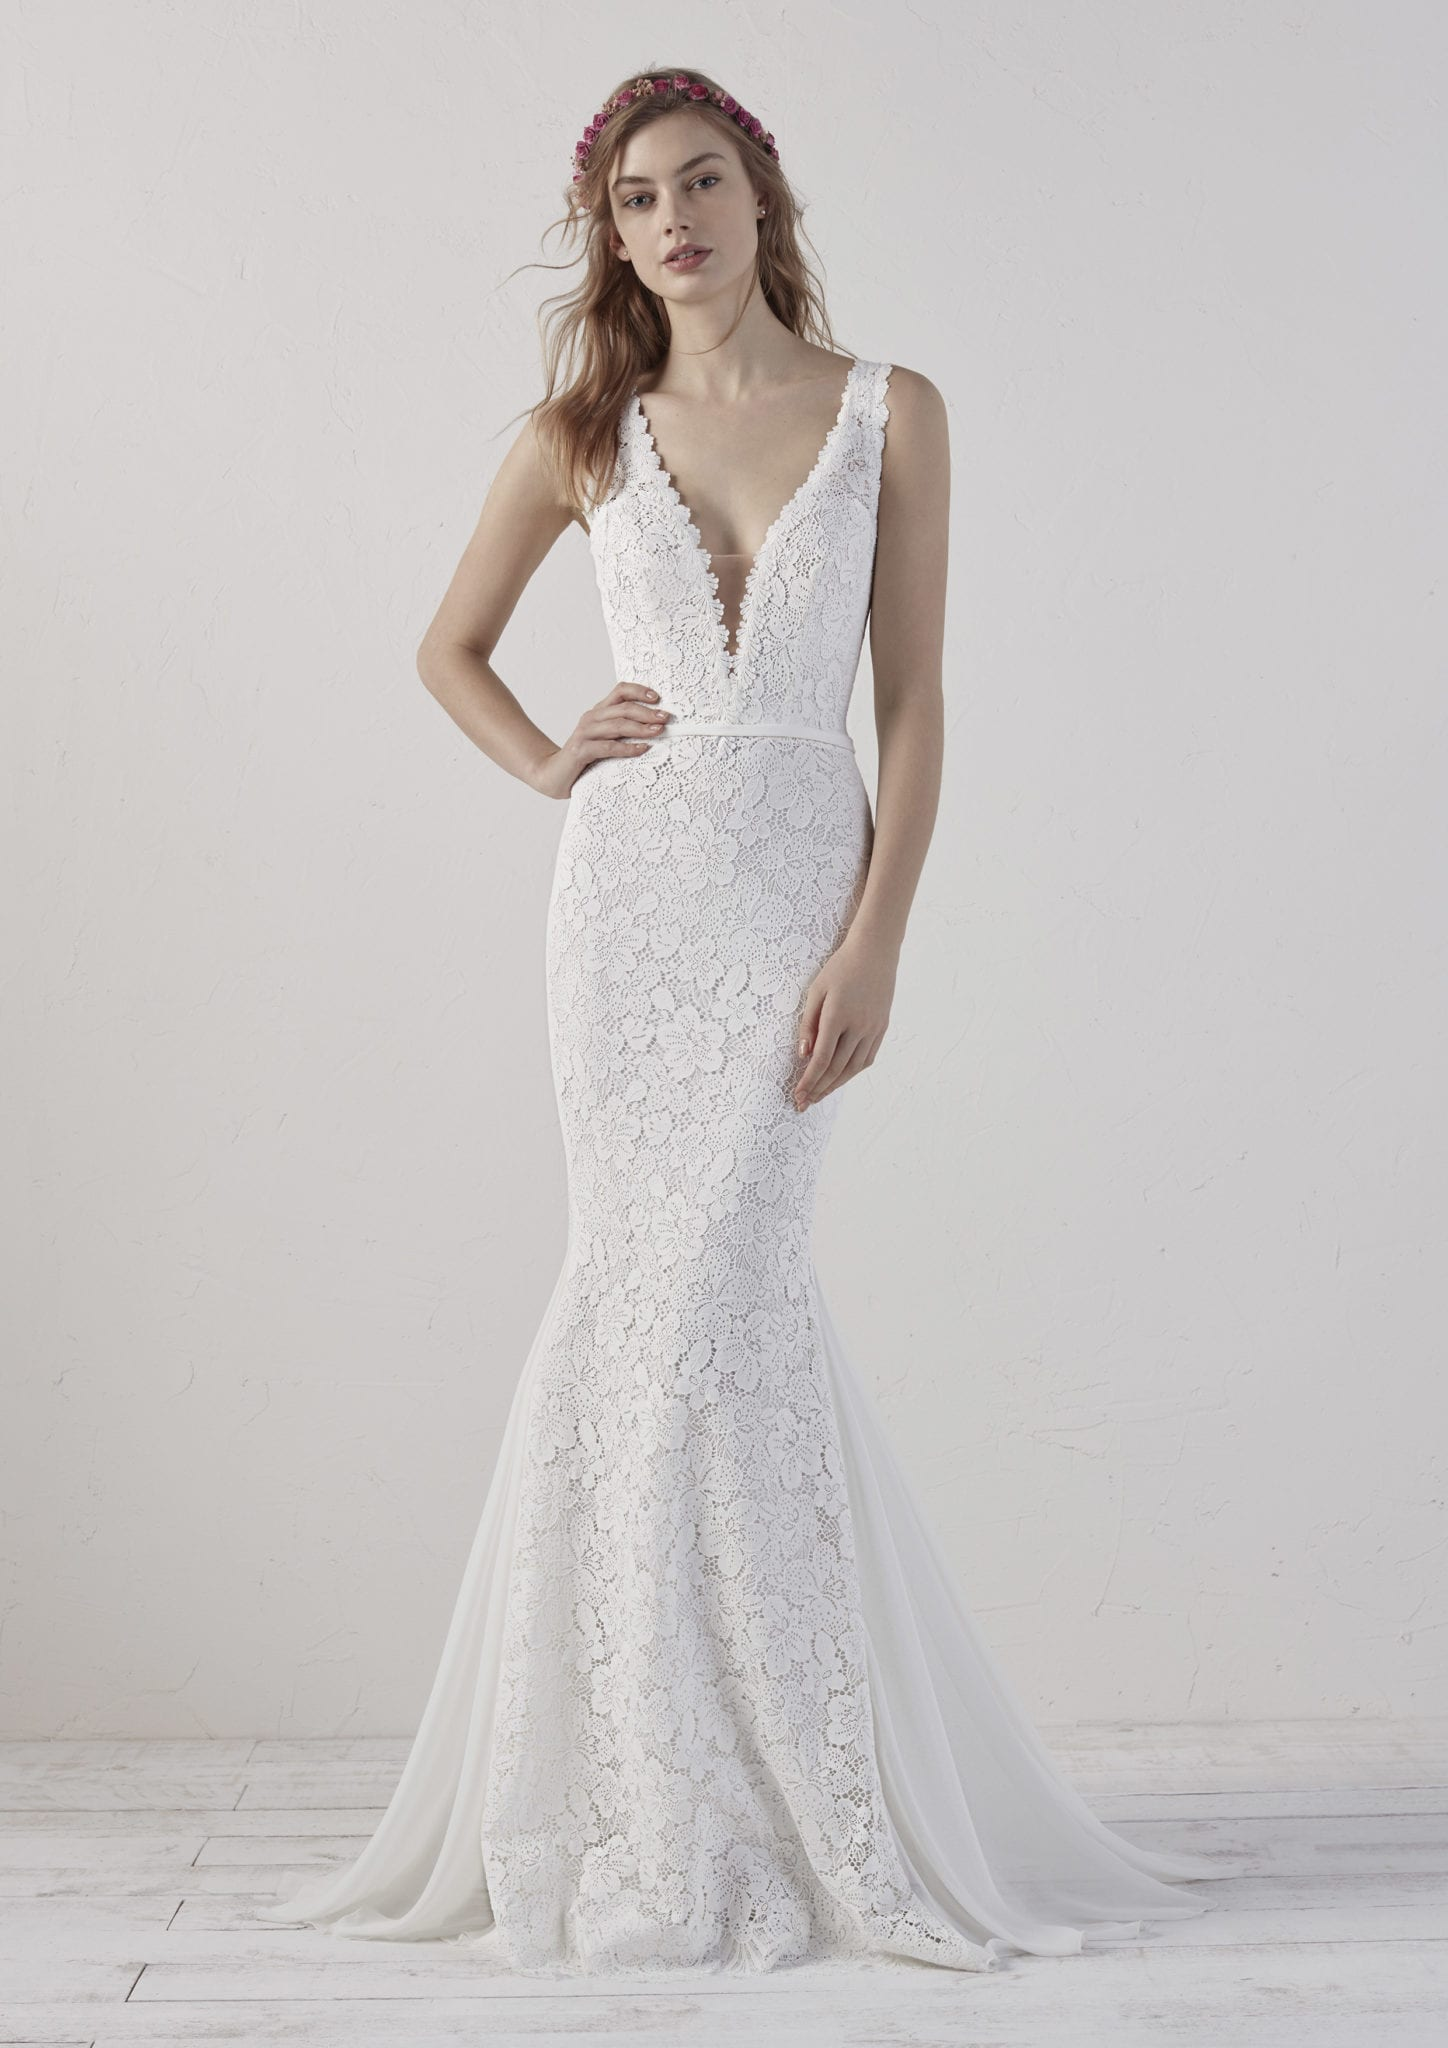 Eladia Wedding Dress